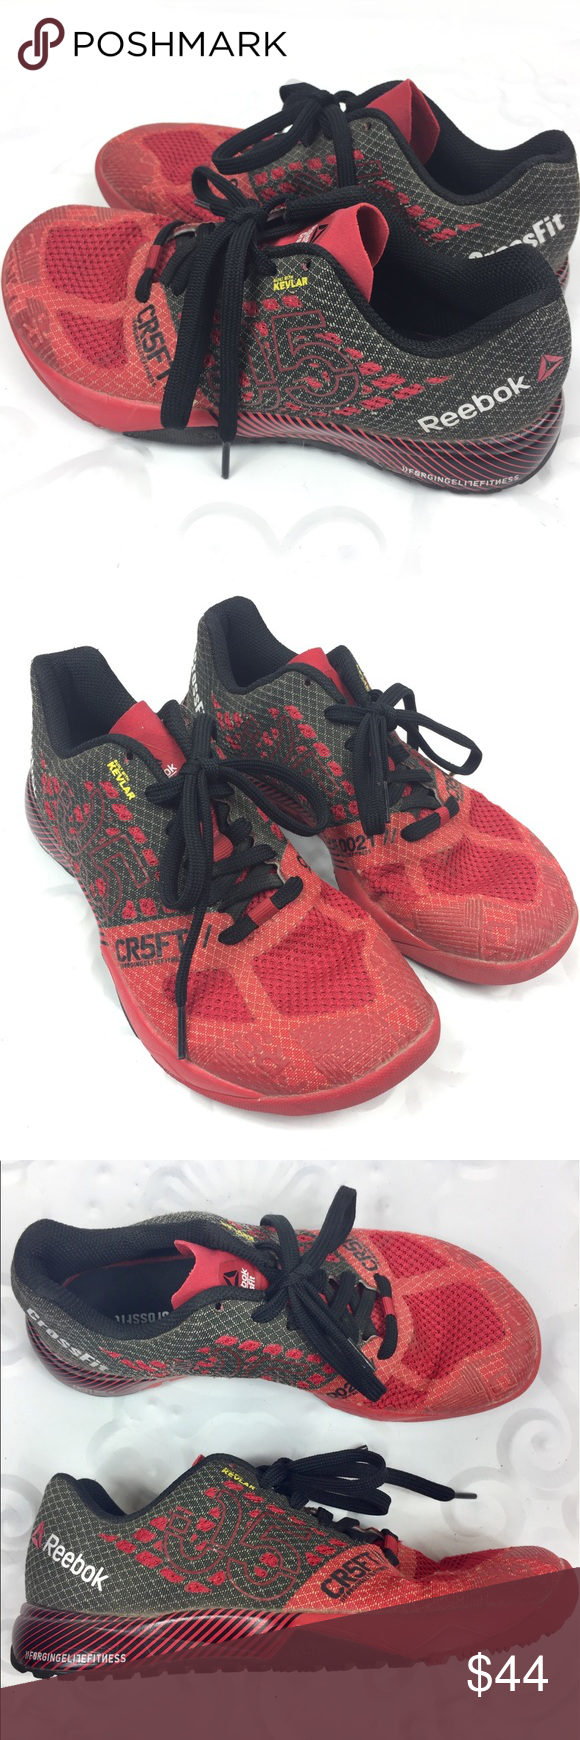 0bc9a2bb7df9 REEBOK CROSSFIT ATHLETIC SHOE LACE KID BOY 4 Boys size 4 or women s size  5.5 equivalent. Nice preowned condition! SKUC Reebok Shoes Sneakers